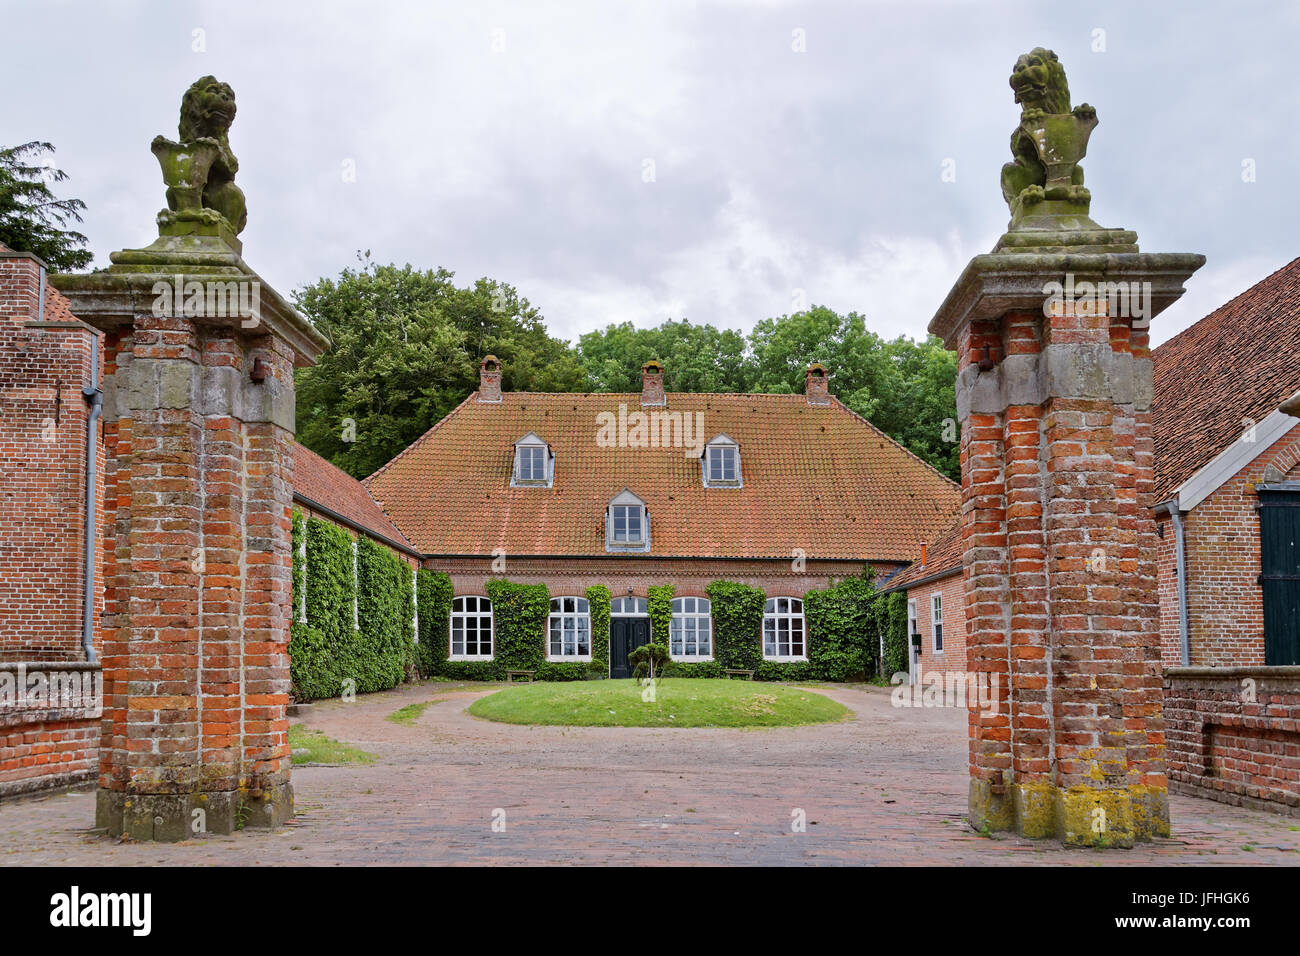 Osterburg in Groothusen, East Frisia - Stock Image